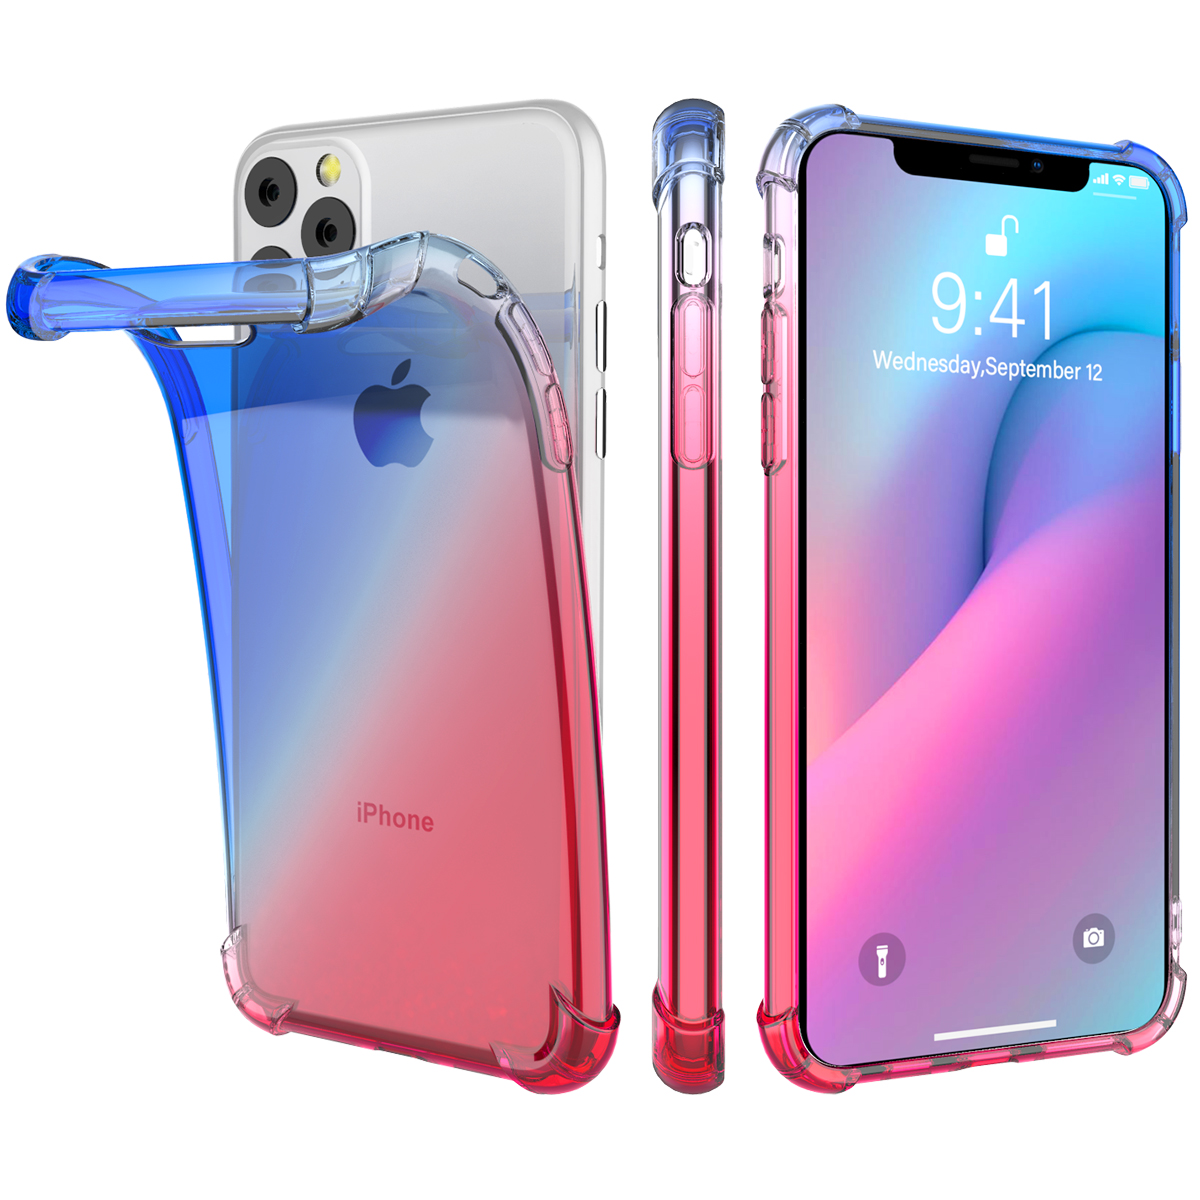 Gradient Soft TPU Case for iPhone 11/11 Pro/11 Pro Max 16